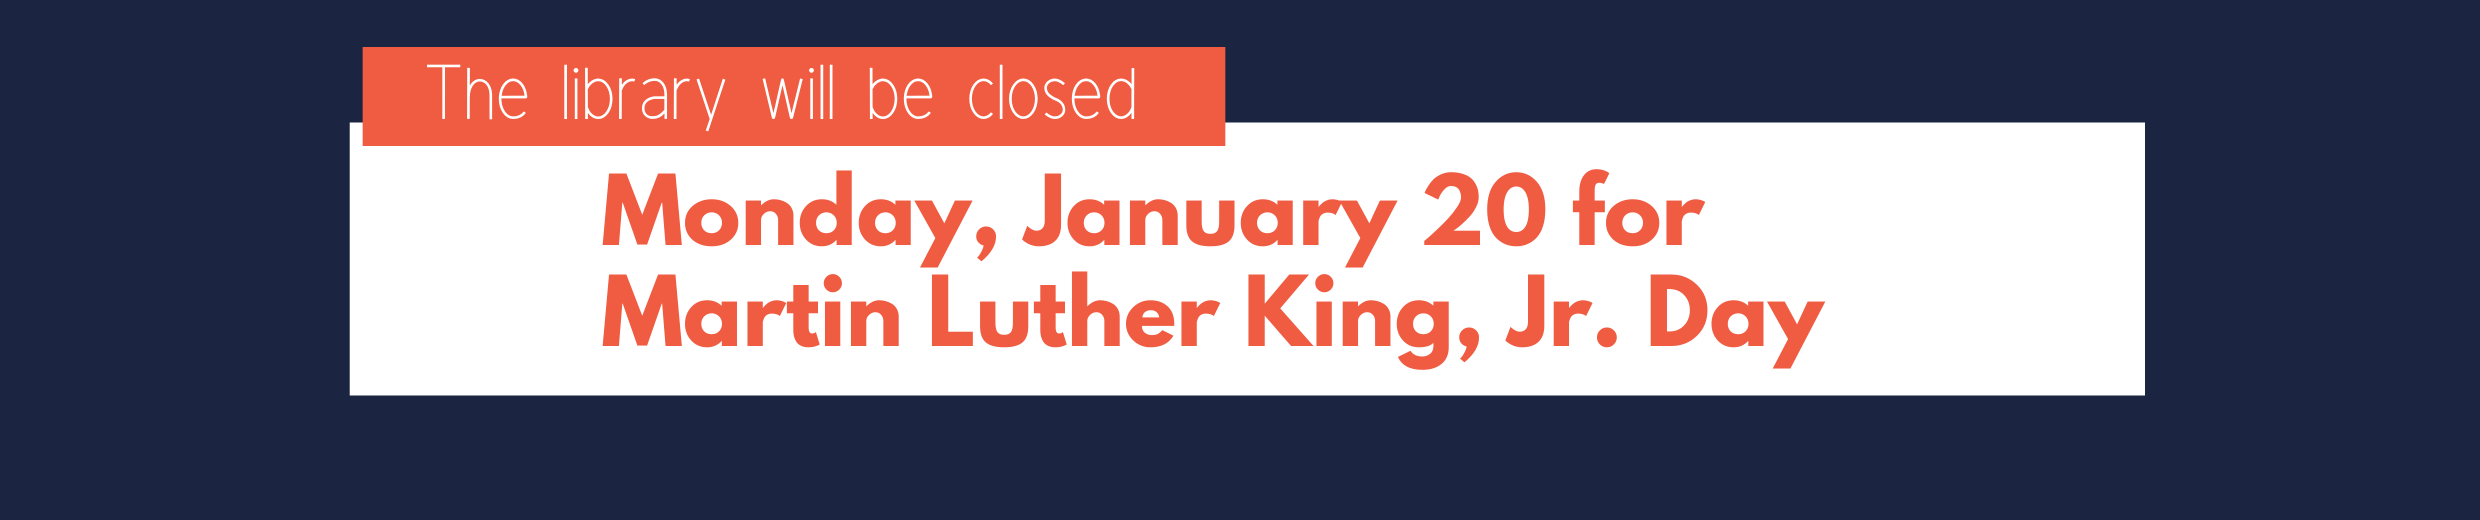 Closed for MLK Day Jan 20